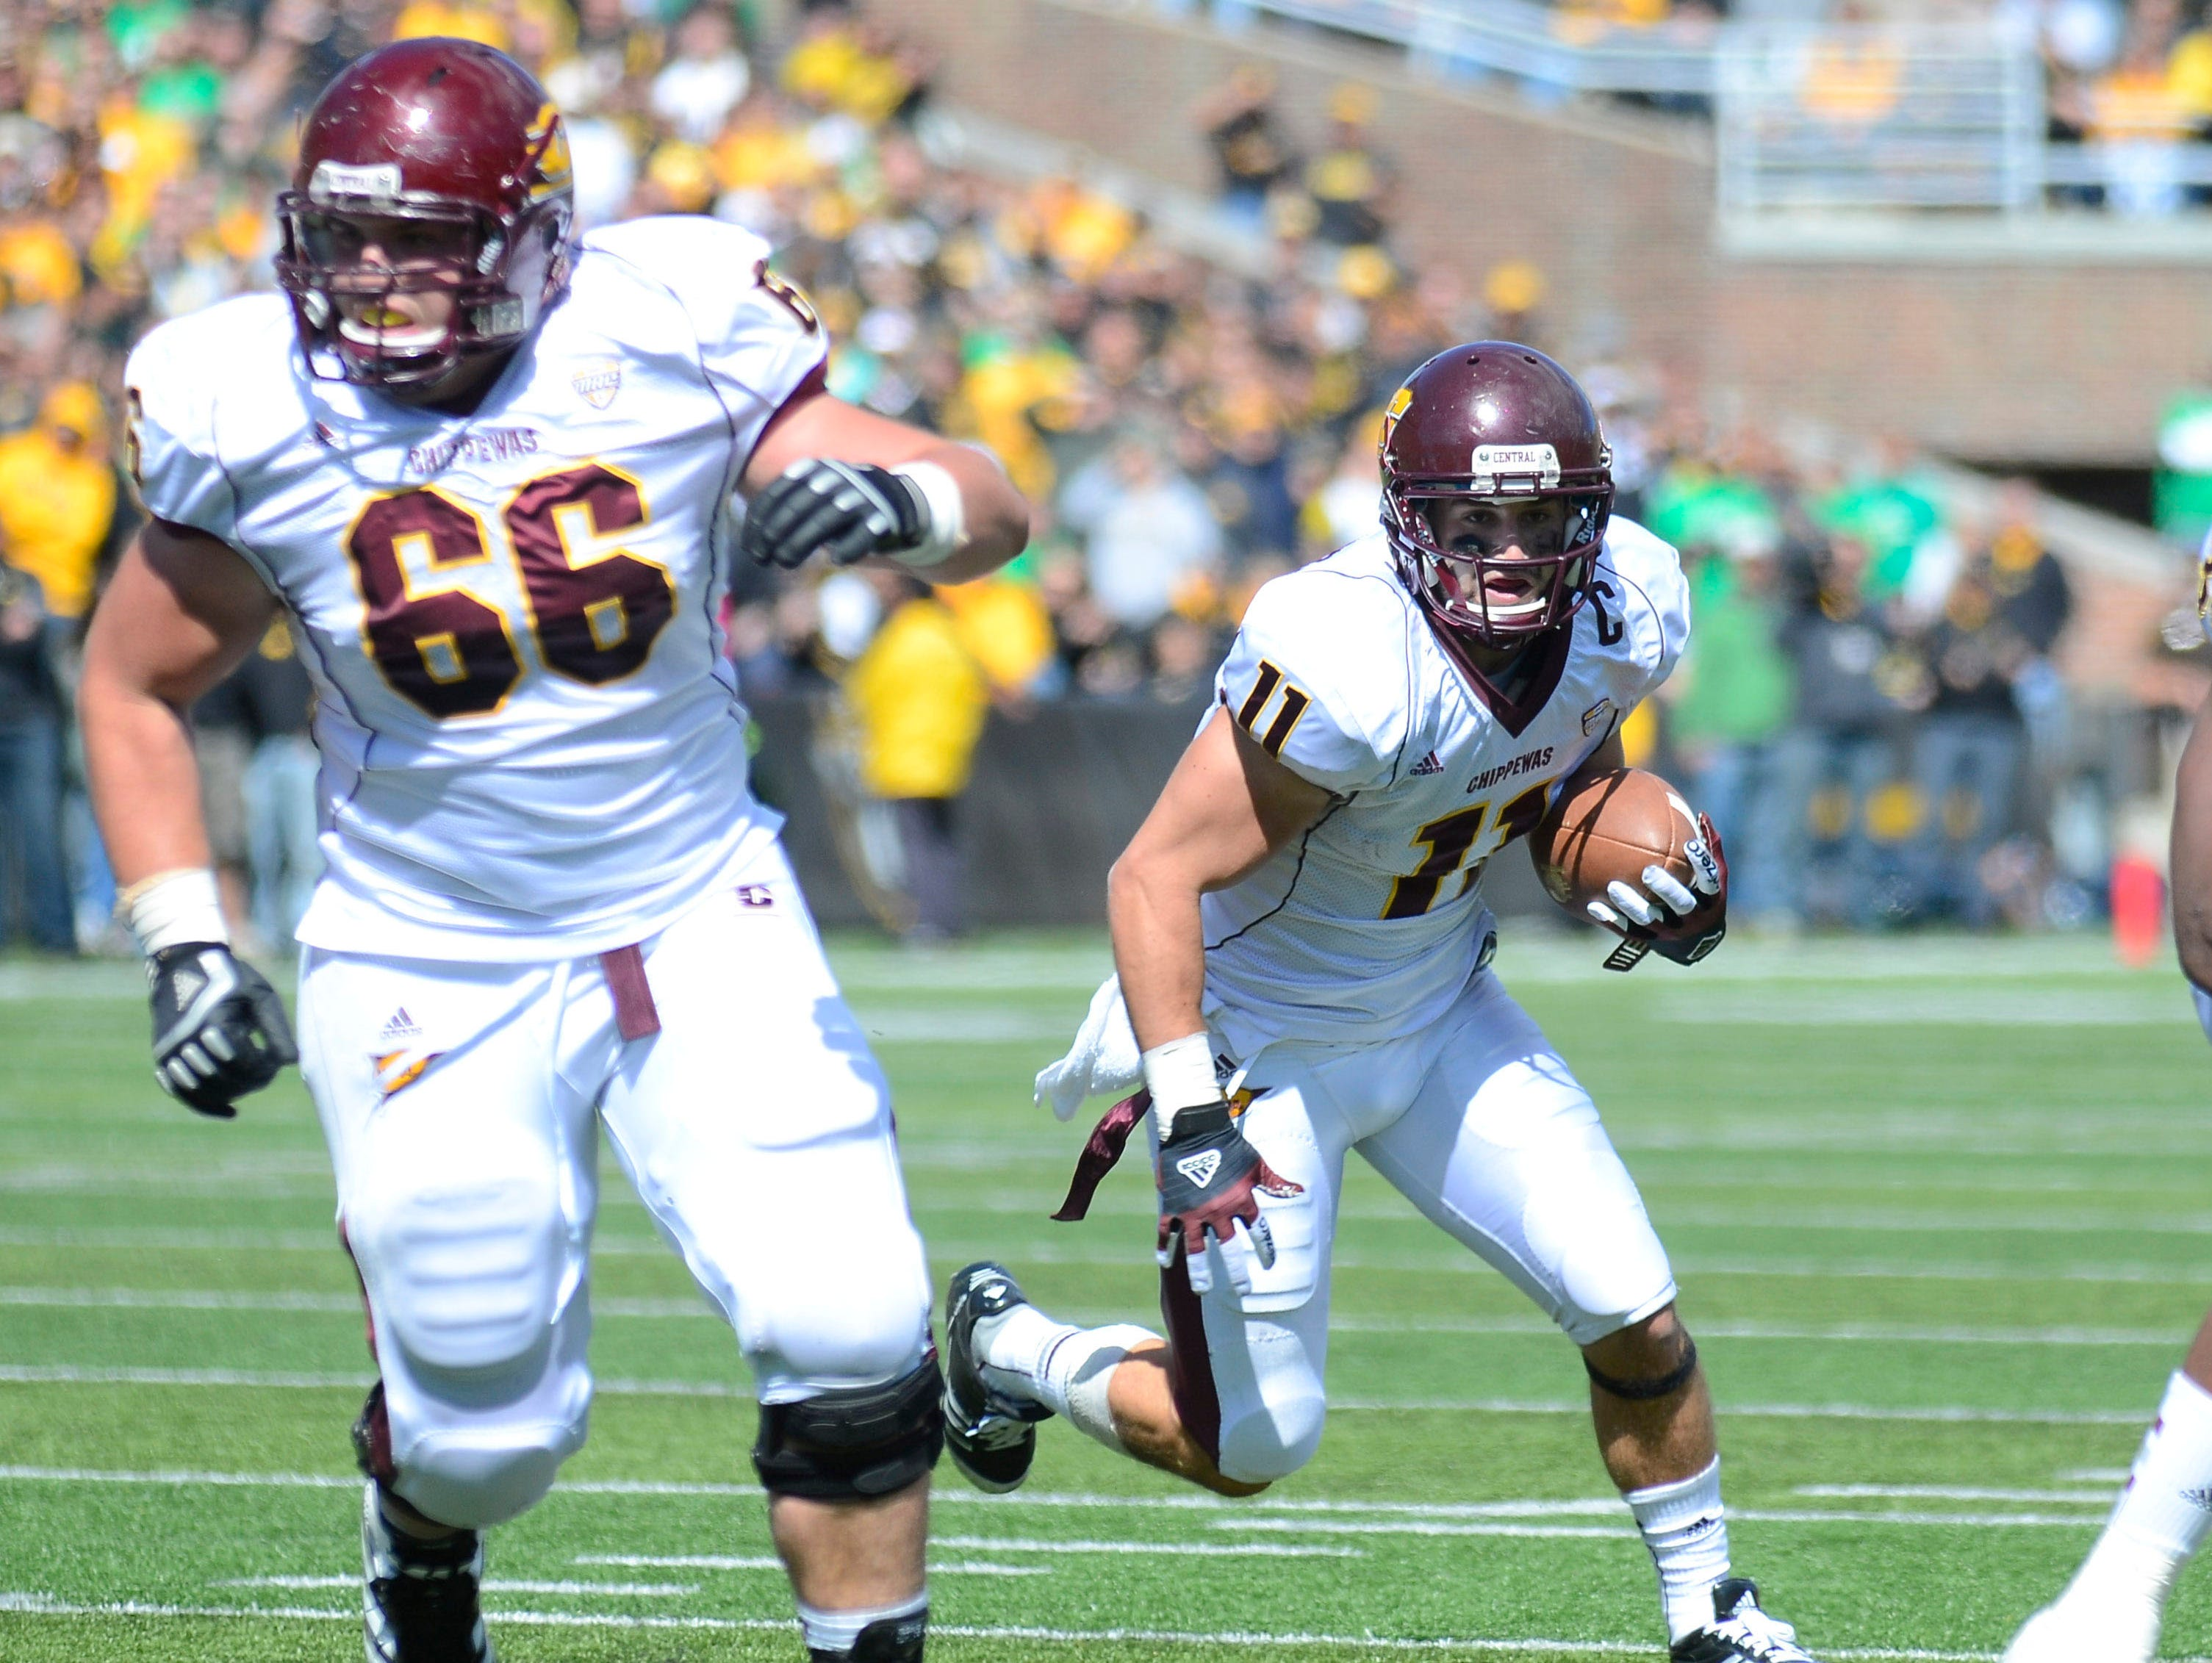 Waverly graduate and CMU offensive lineman Andy Phillips (66) hopes to land a shot with an NFL team.